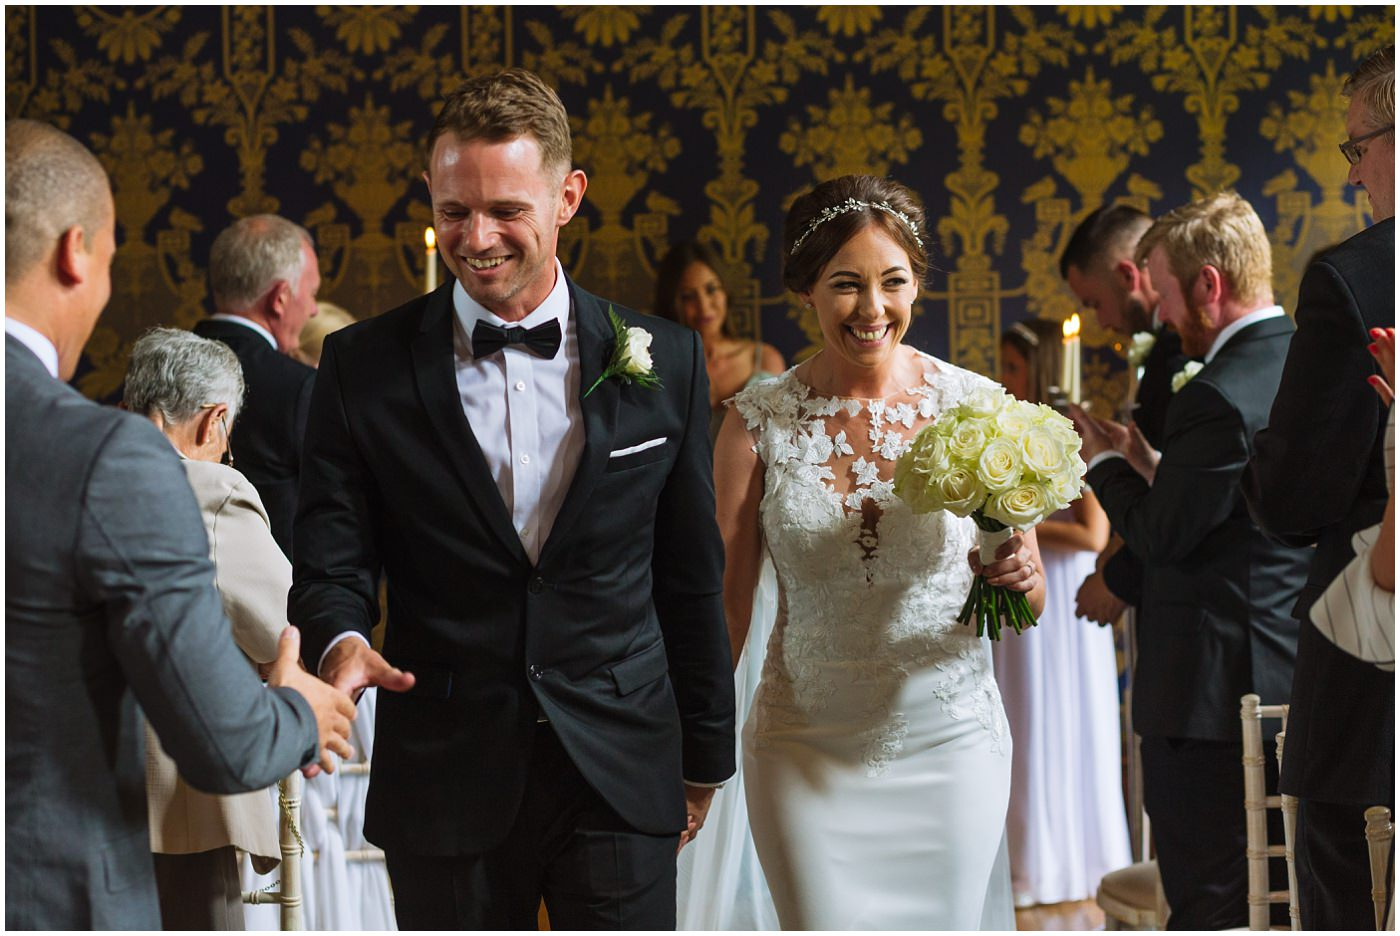 bride and groom leave ceremony room at Soughton Hall and groom shakes hands with a guest